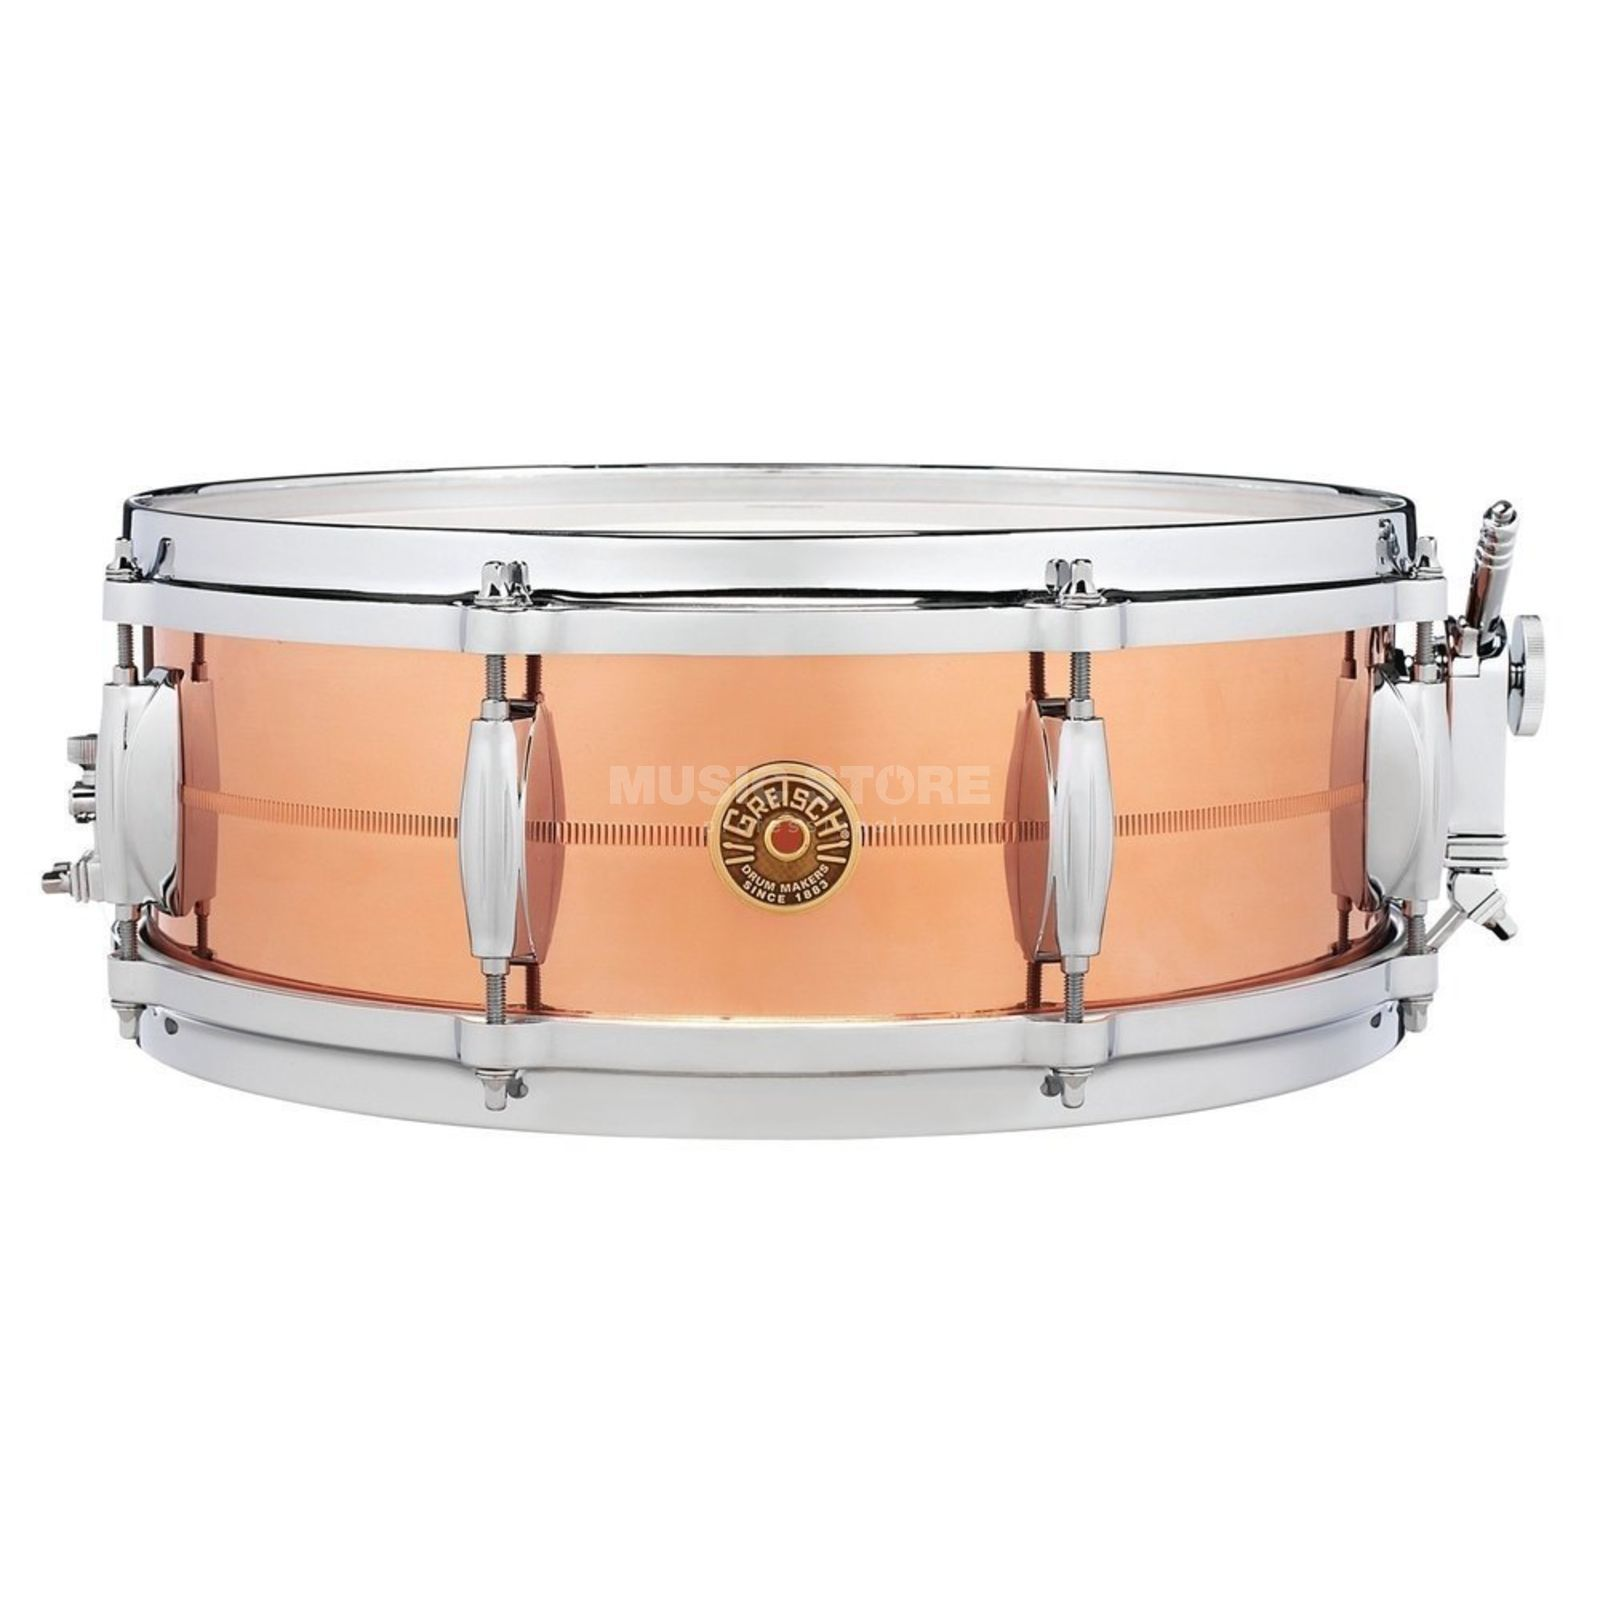 "Gretsch Snare Drum USA, Copper 14""x5"" Produktbild"